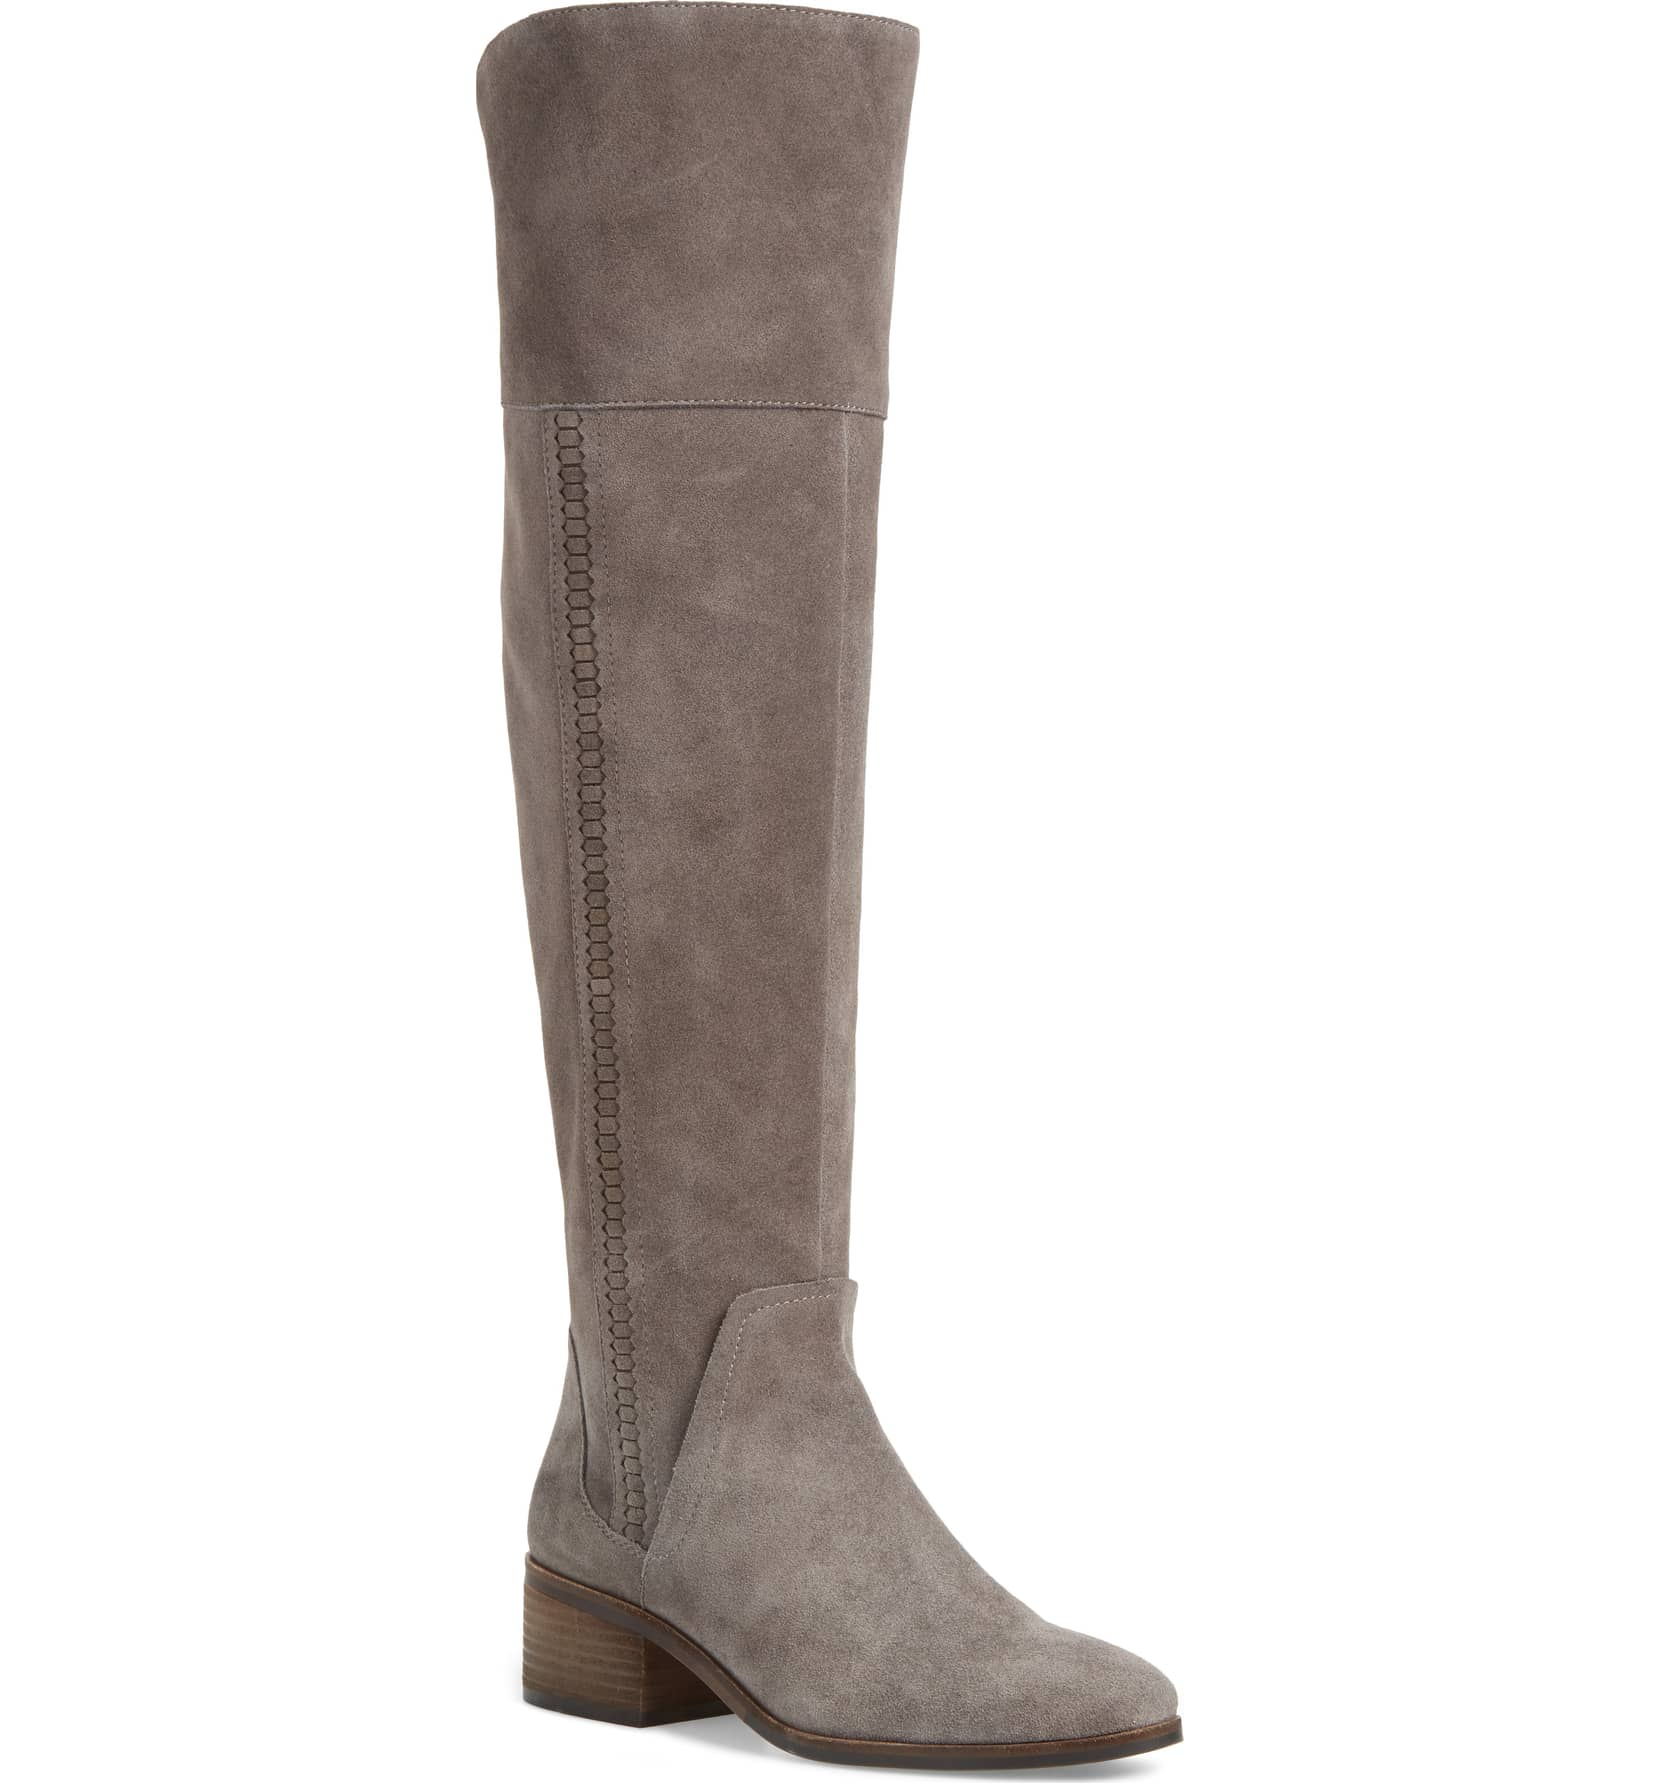 vince camuto gray suede boot nordstrom sale